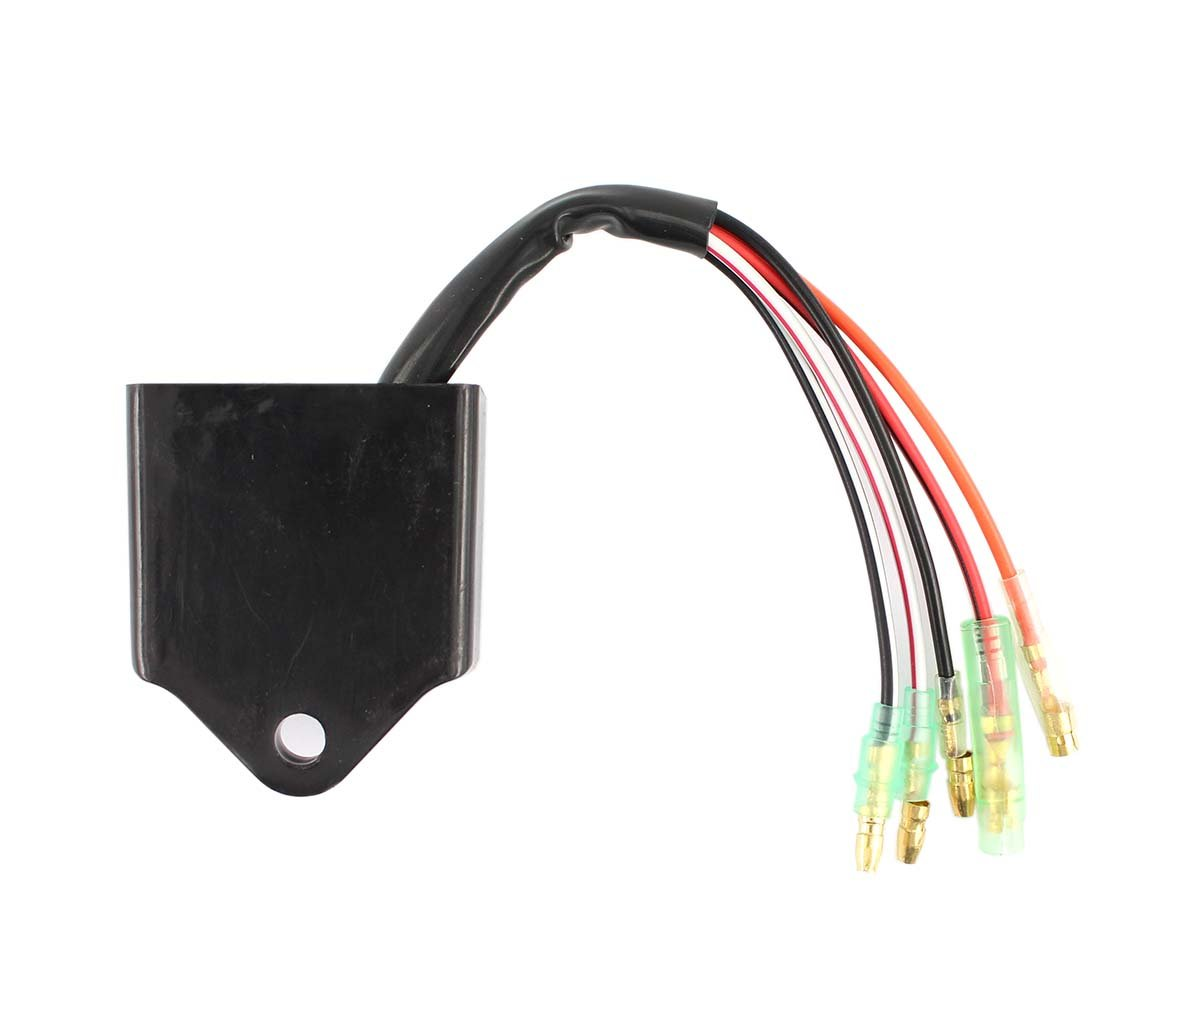 Xtremeamazing Cdi Box Module Unit For Yamaha Blaster 200 1988 Ignition Wiring Yfs200 Atv 2002 3fl855400000 3fl 85540 00 10 2xj M0